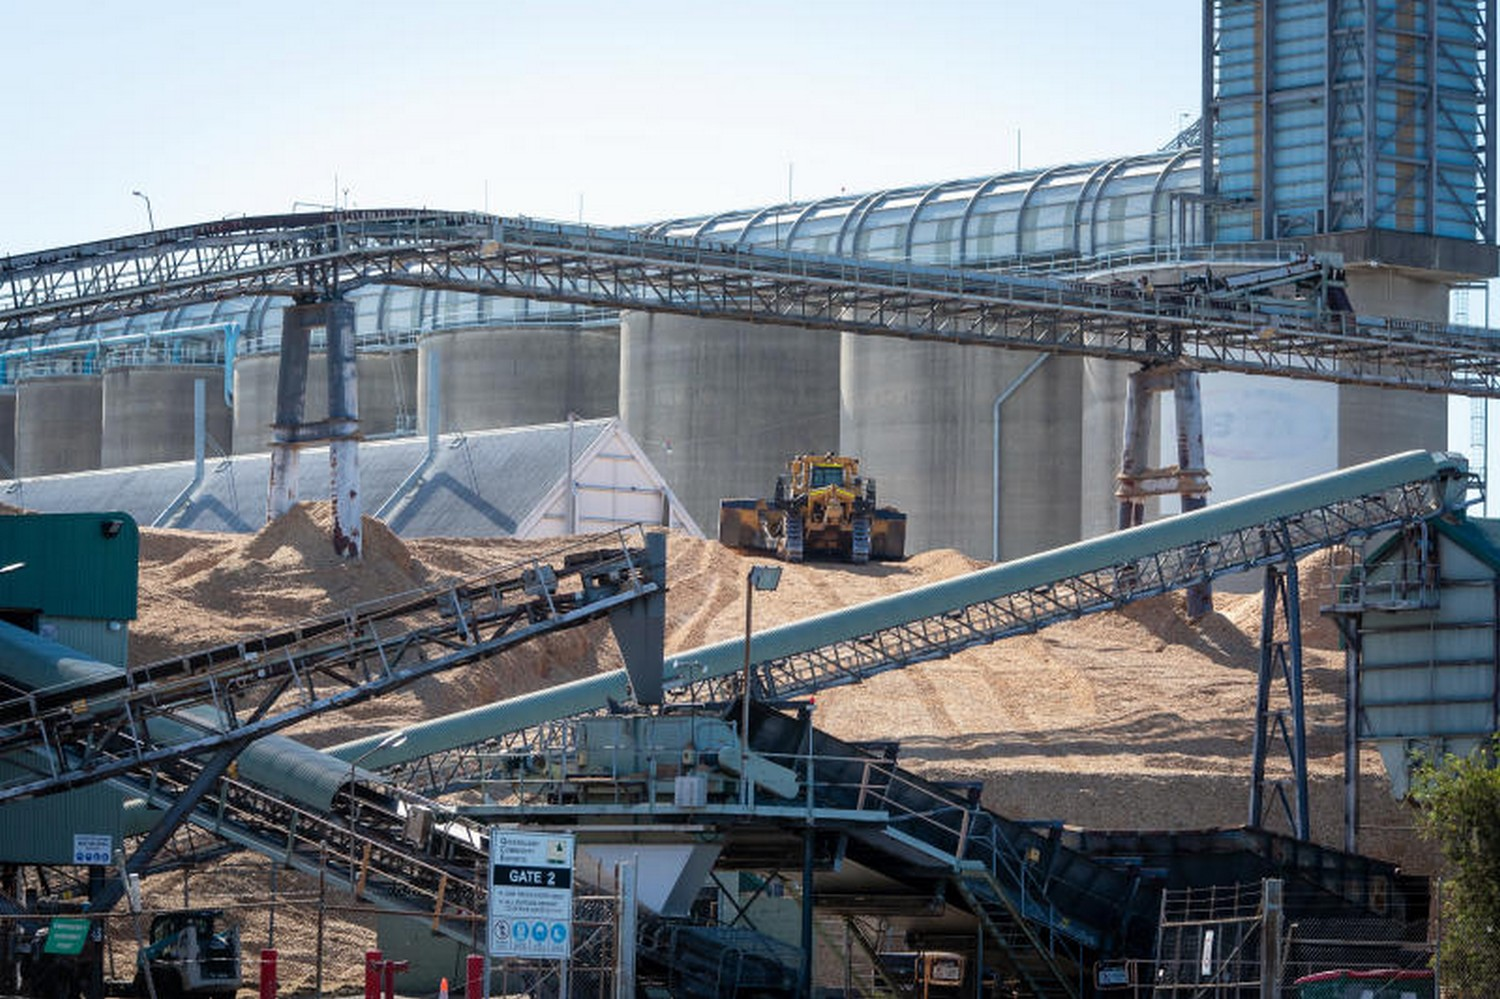 A front loader travels over wood chips for export to China at the Port of Brisbane. Australia's calls for an independent probe into the origins of the coronavirus pandemic is heightening tensions with Beijing. (Photo: Bloomberg)